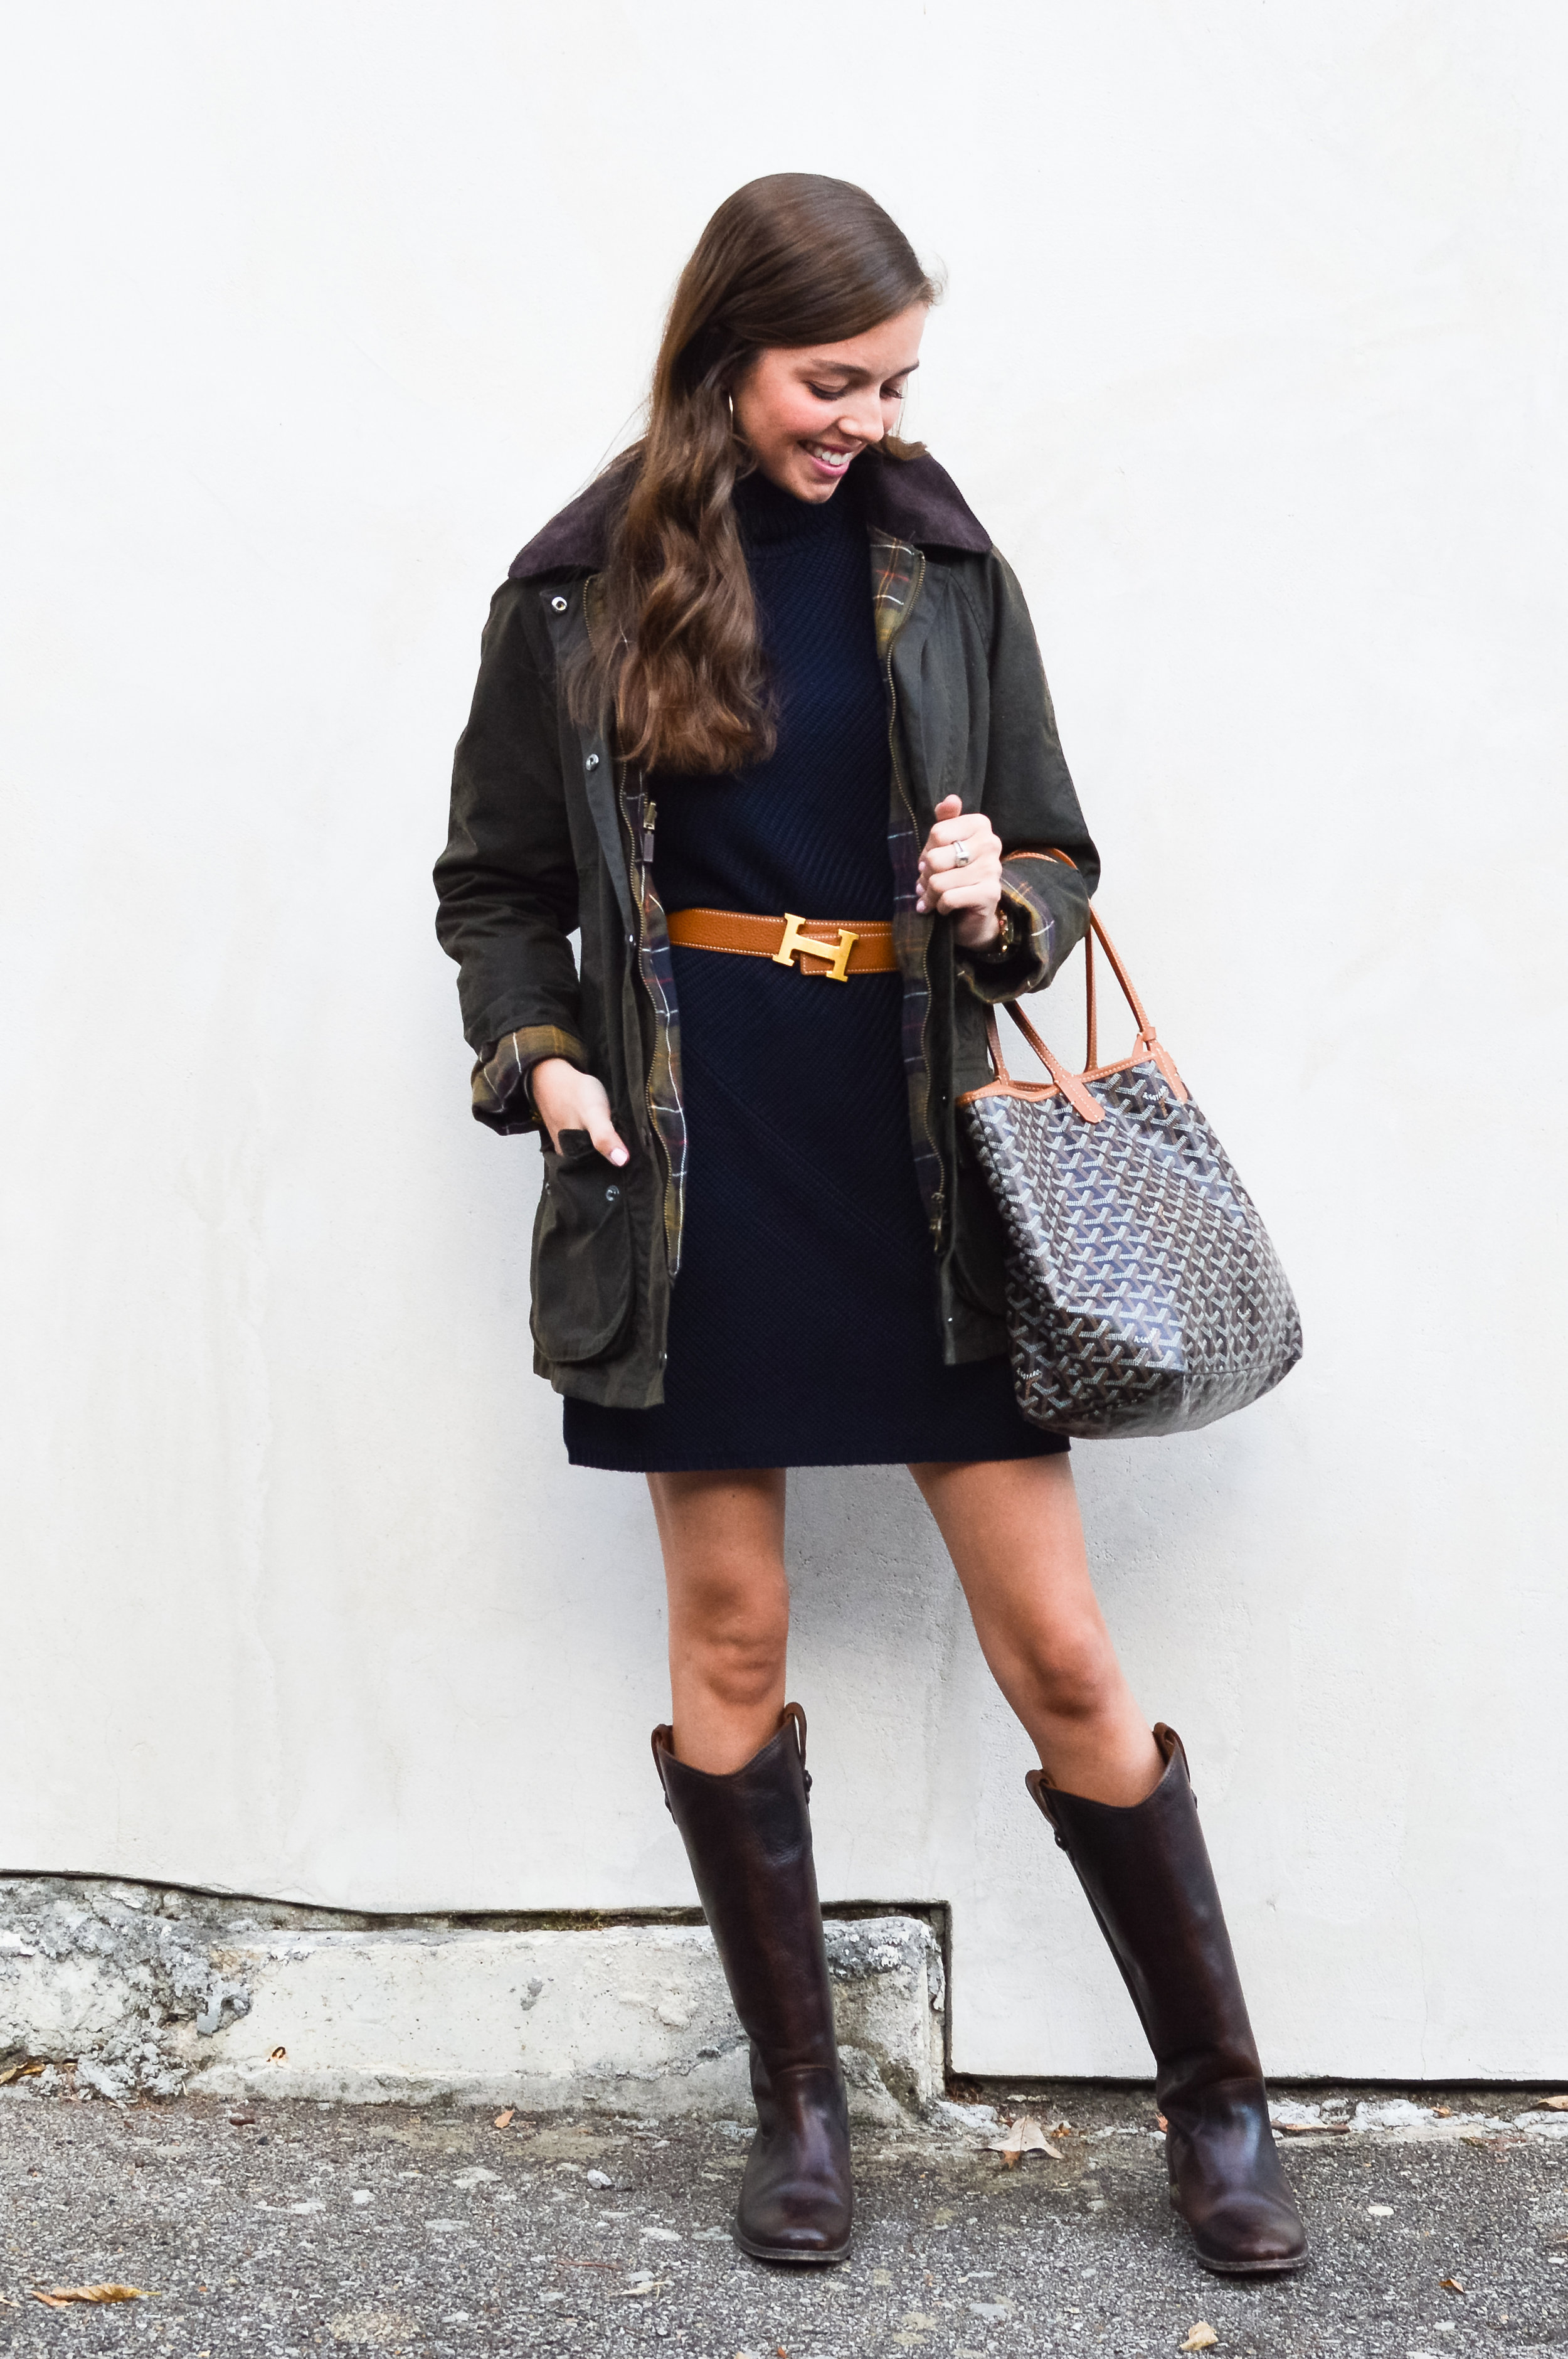 dc62fab47 fashion blogger lcb style tory burch sweater dress frye boots barbour  beadnell jacket (12 of